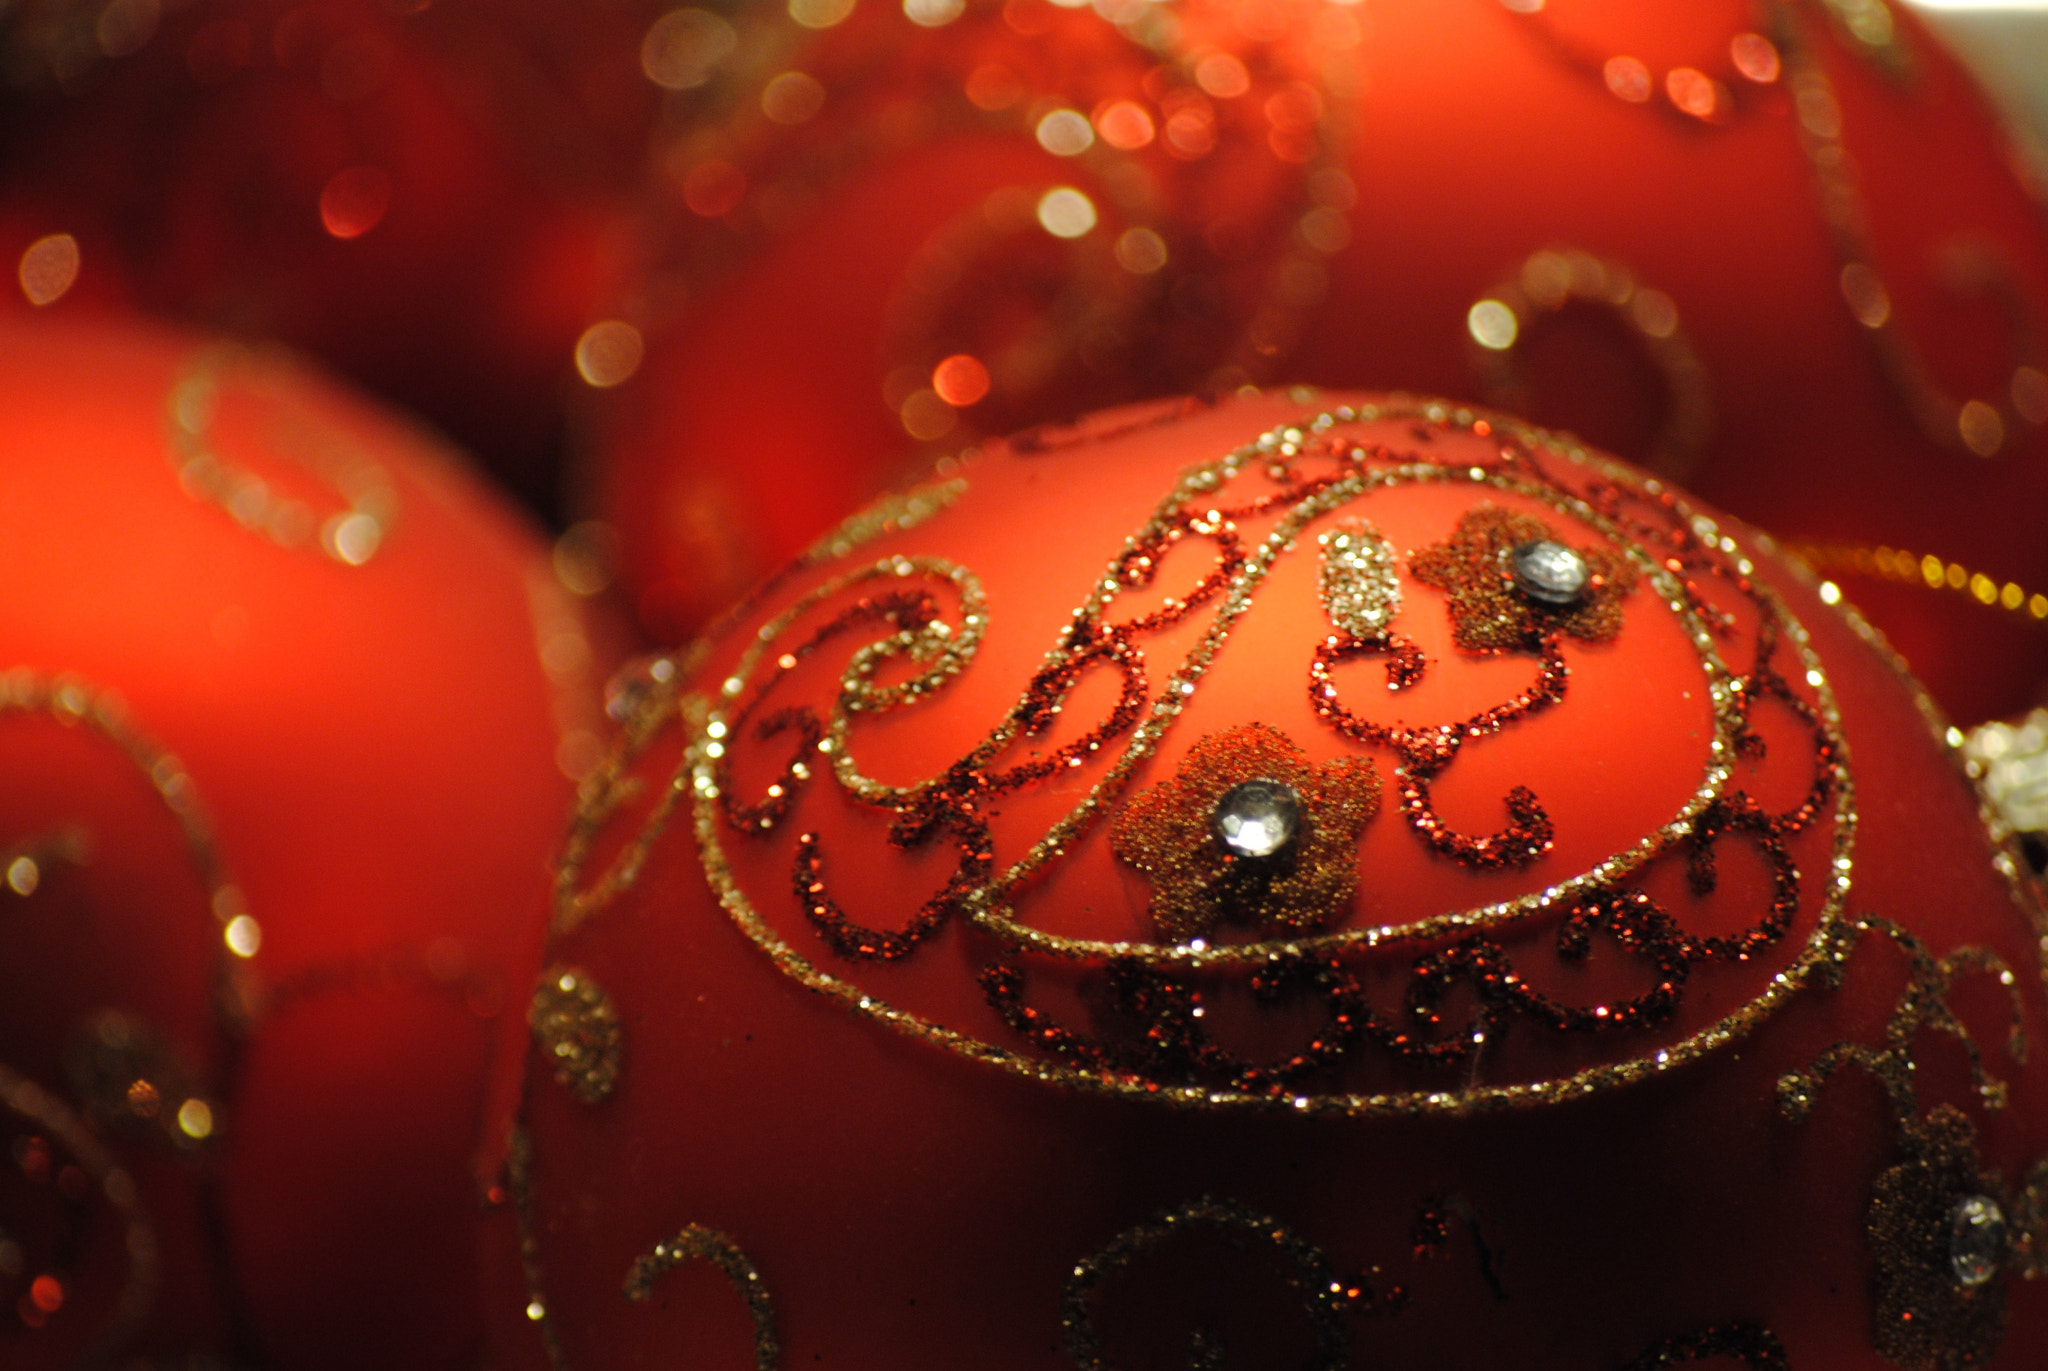 Photograph Decorations by Enrico Baldo on 500px